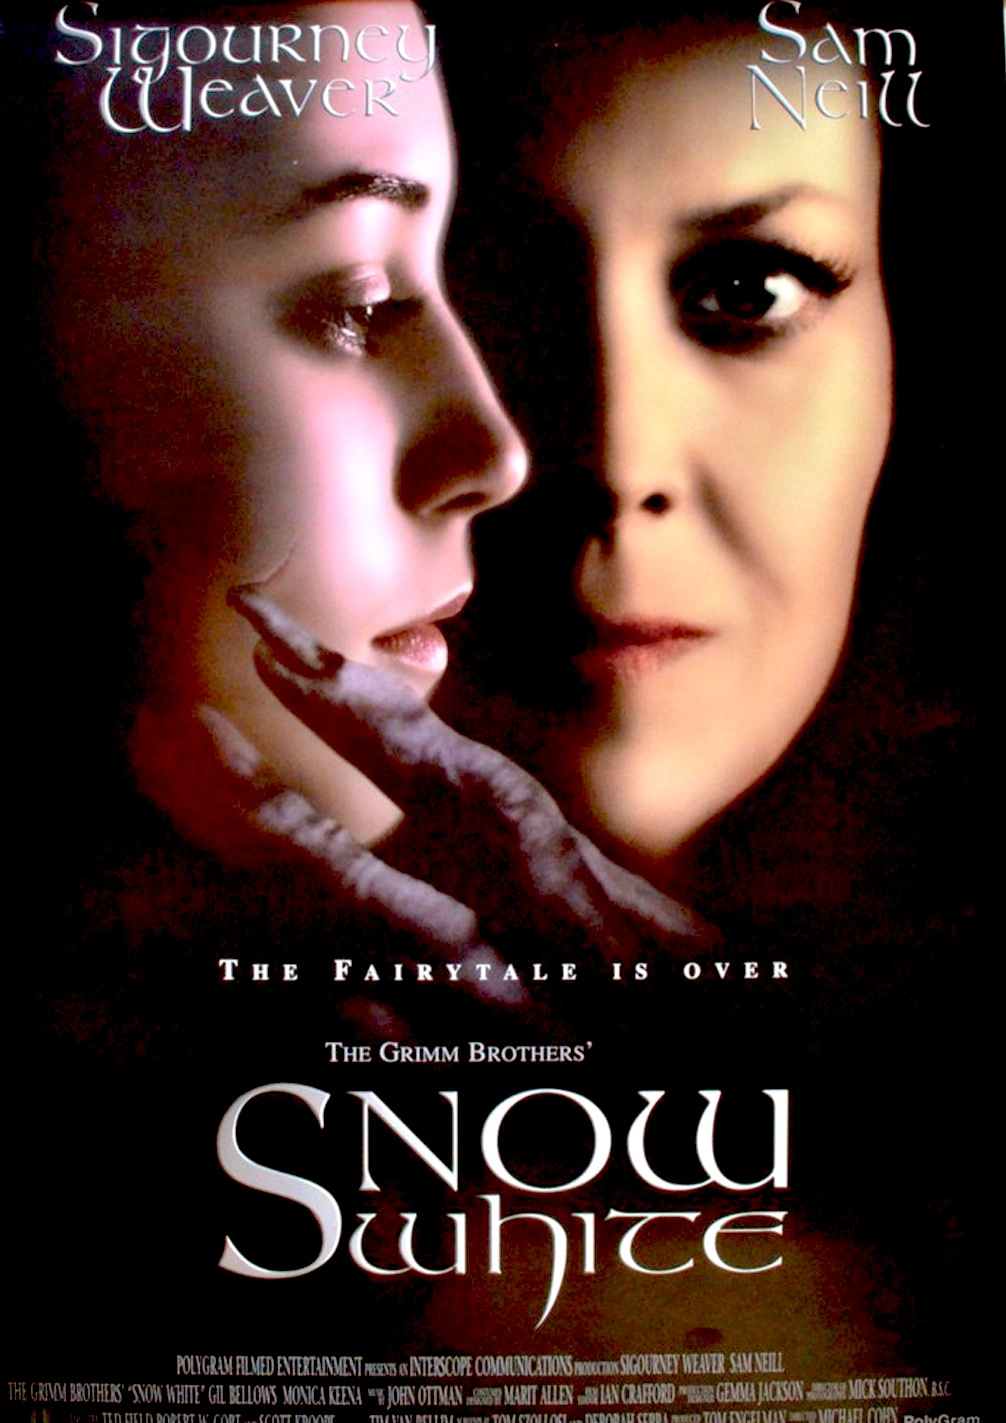 Snow White: A Tale of Terror [1997]